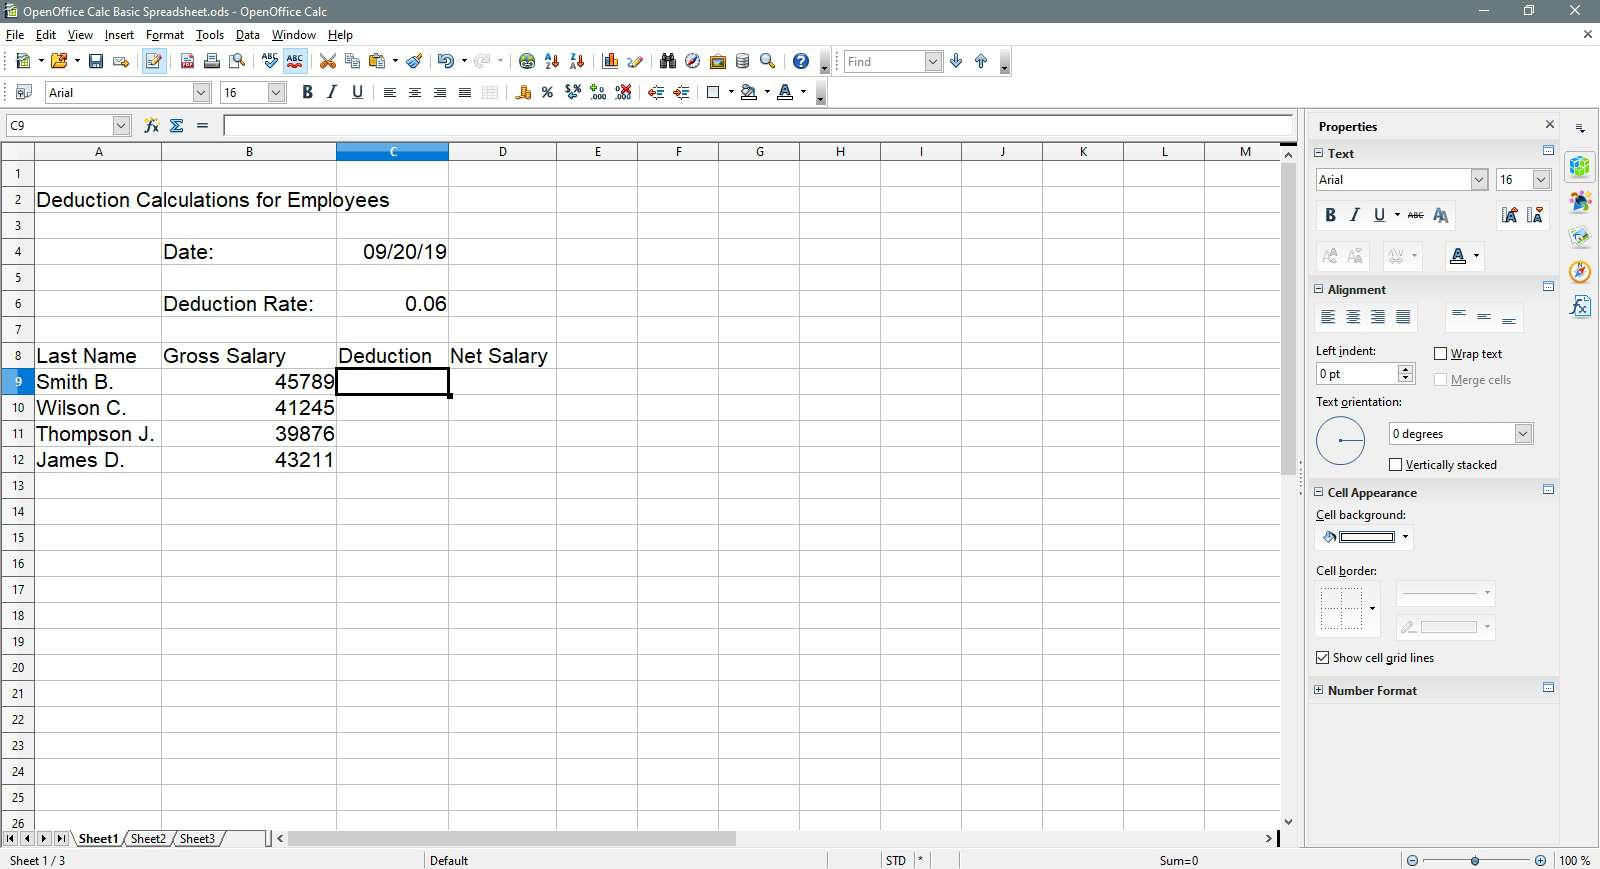 The cell C9 is selected in OpenOffice Calc.